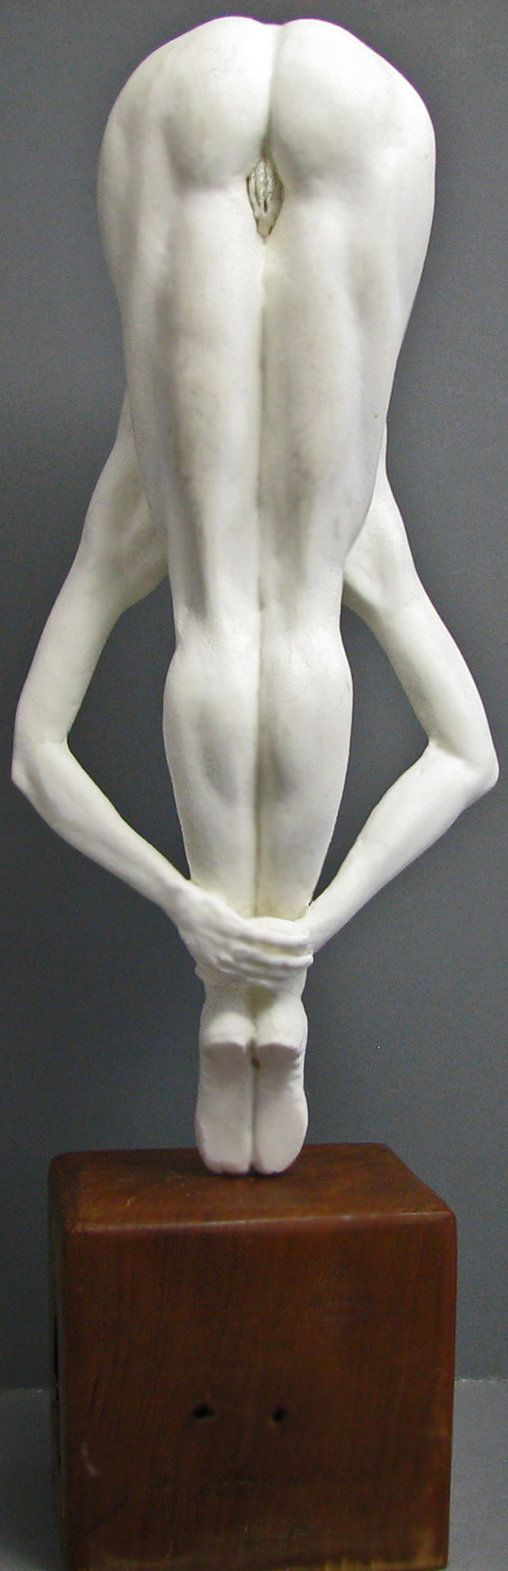 61 best anatomy sculpture images on Pinterest | Anatomy reference ...